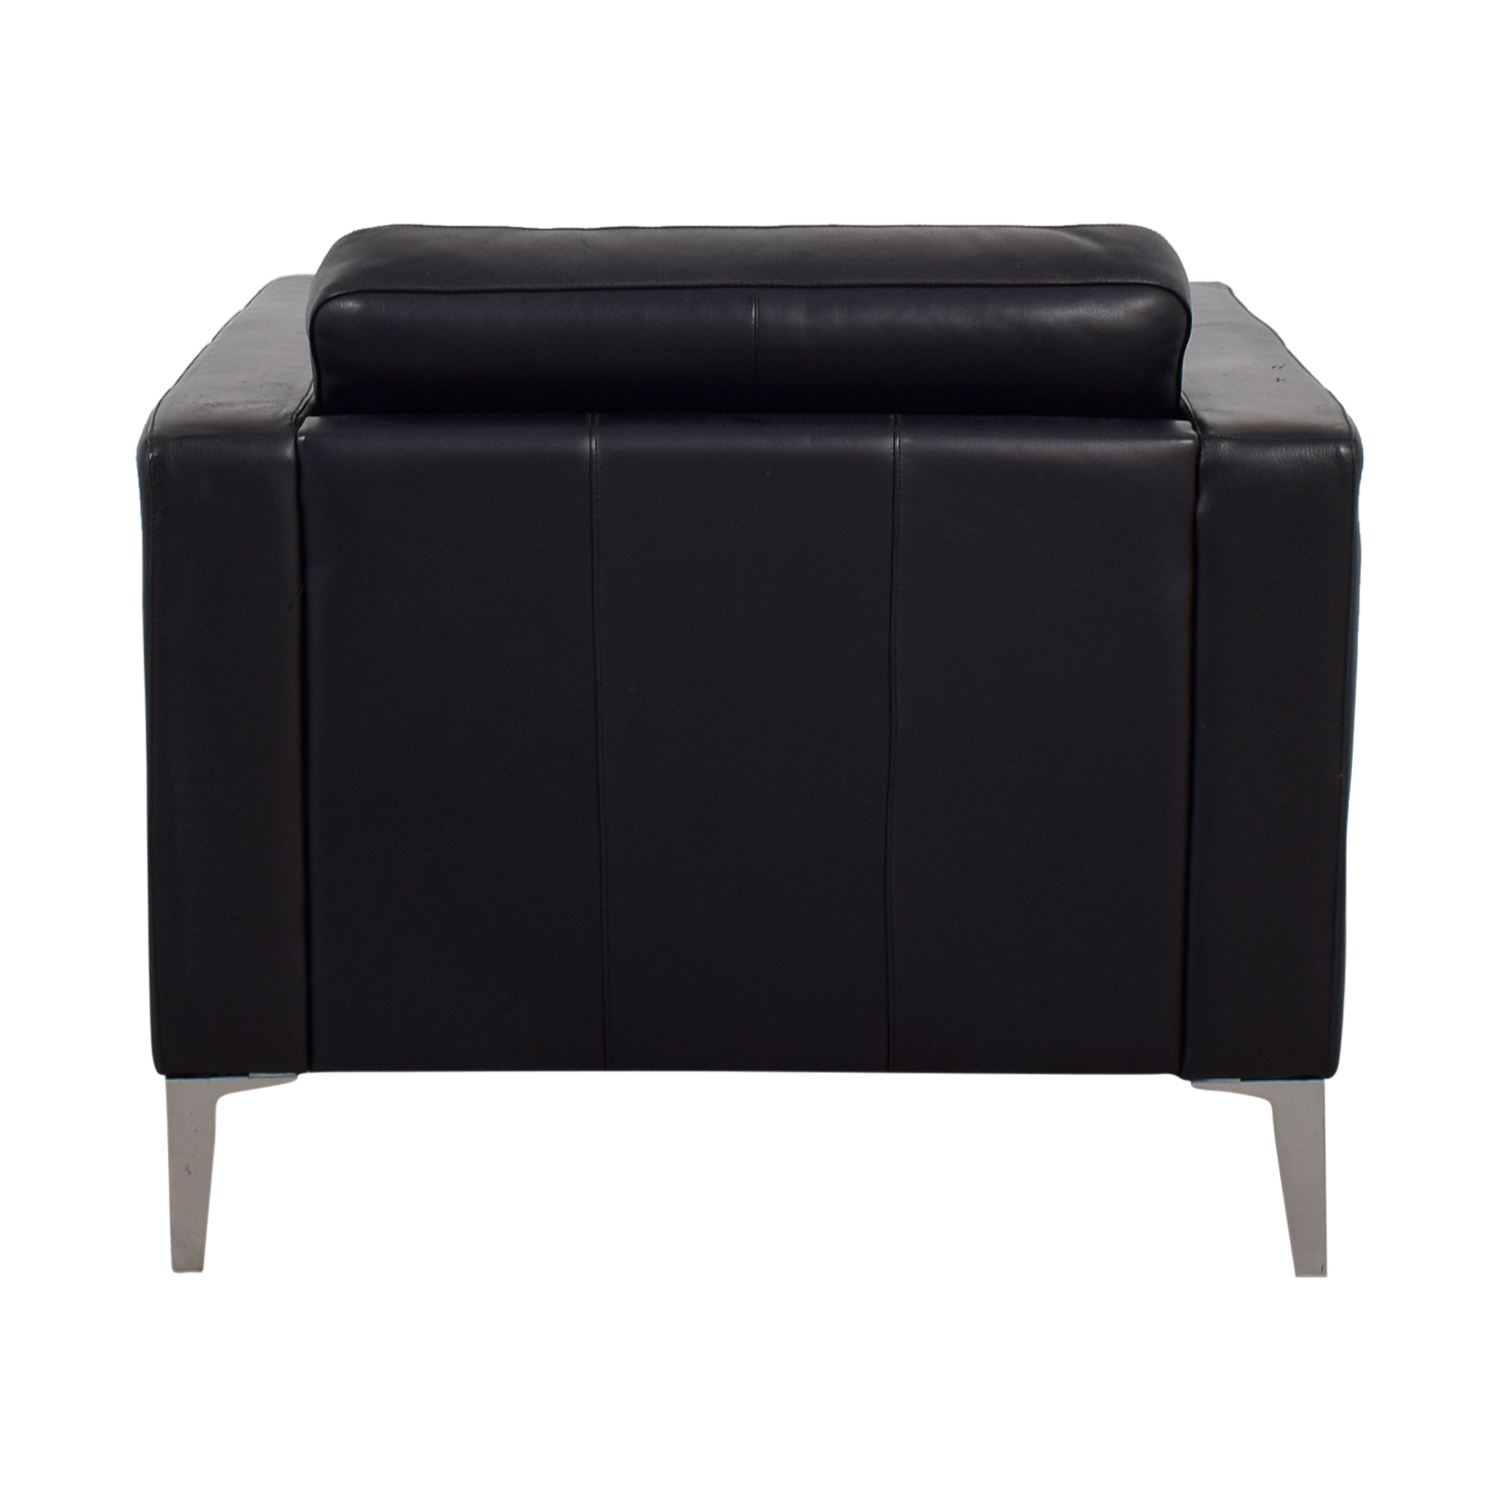 CB2 Black Tufted Leather King Chair / Chairs